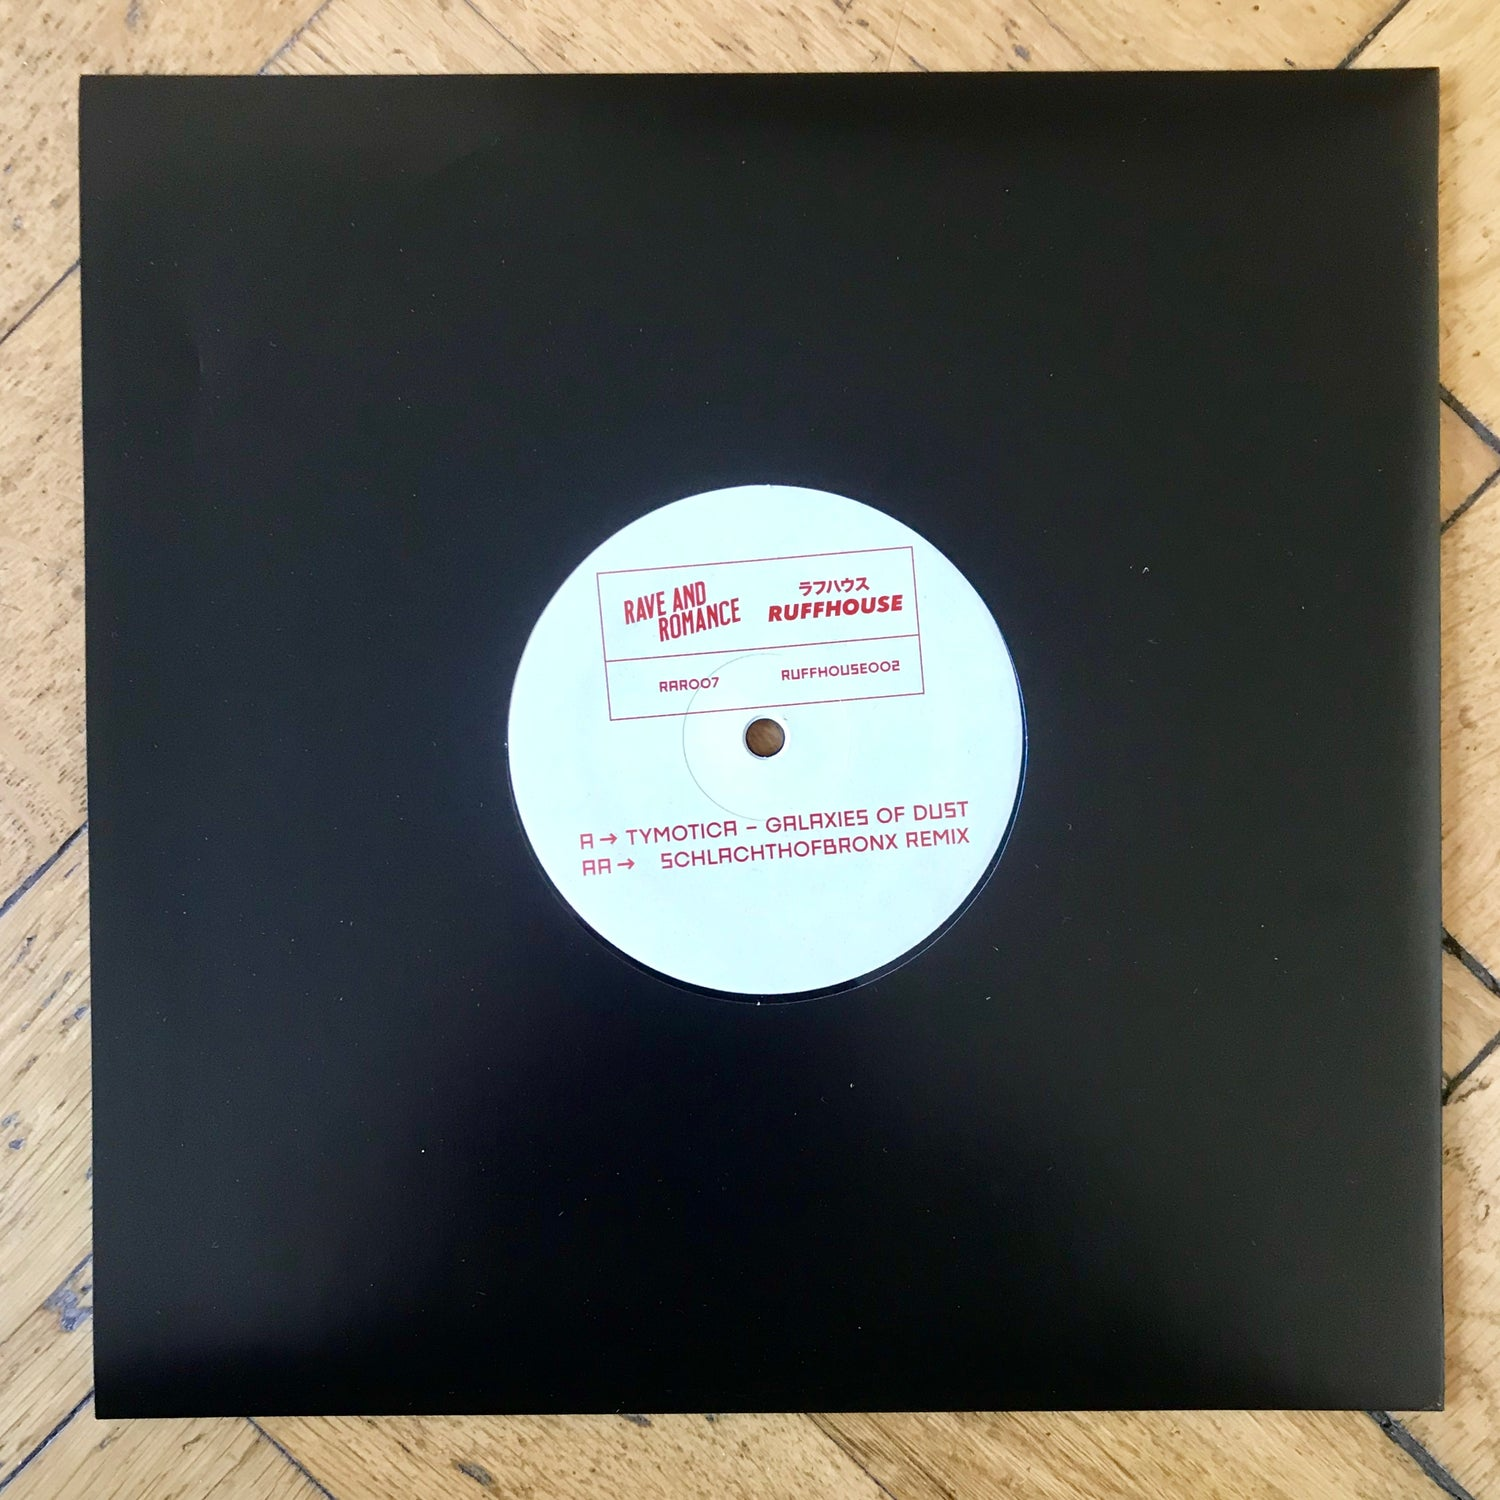 "Image of Tymotica - Galaxies of Dust (+Schlachthofbronx Remix) - 10"" Vinyl (RAR007)"